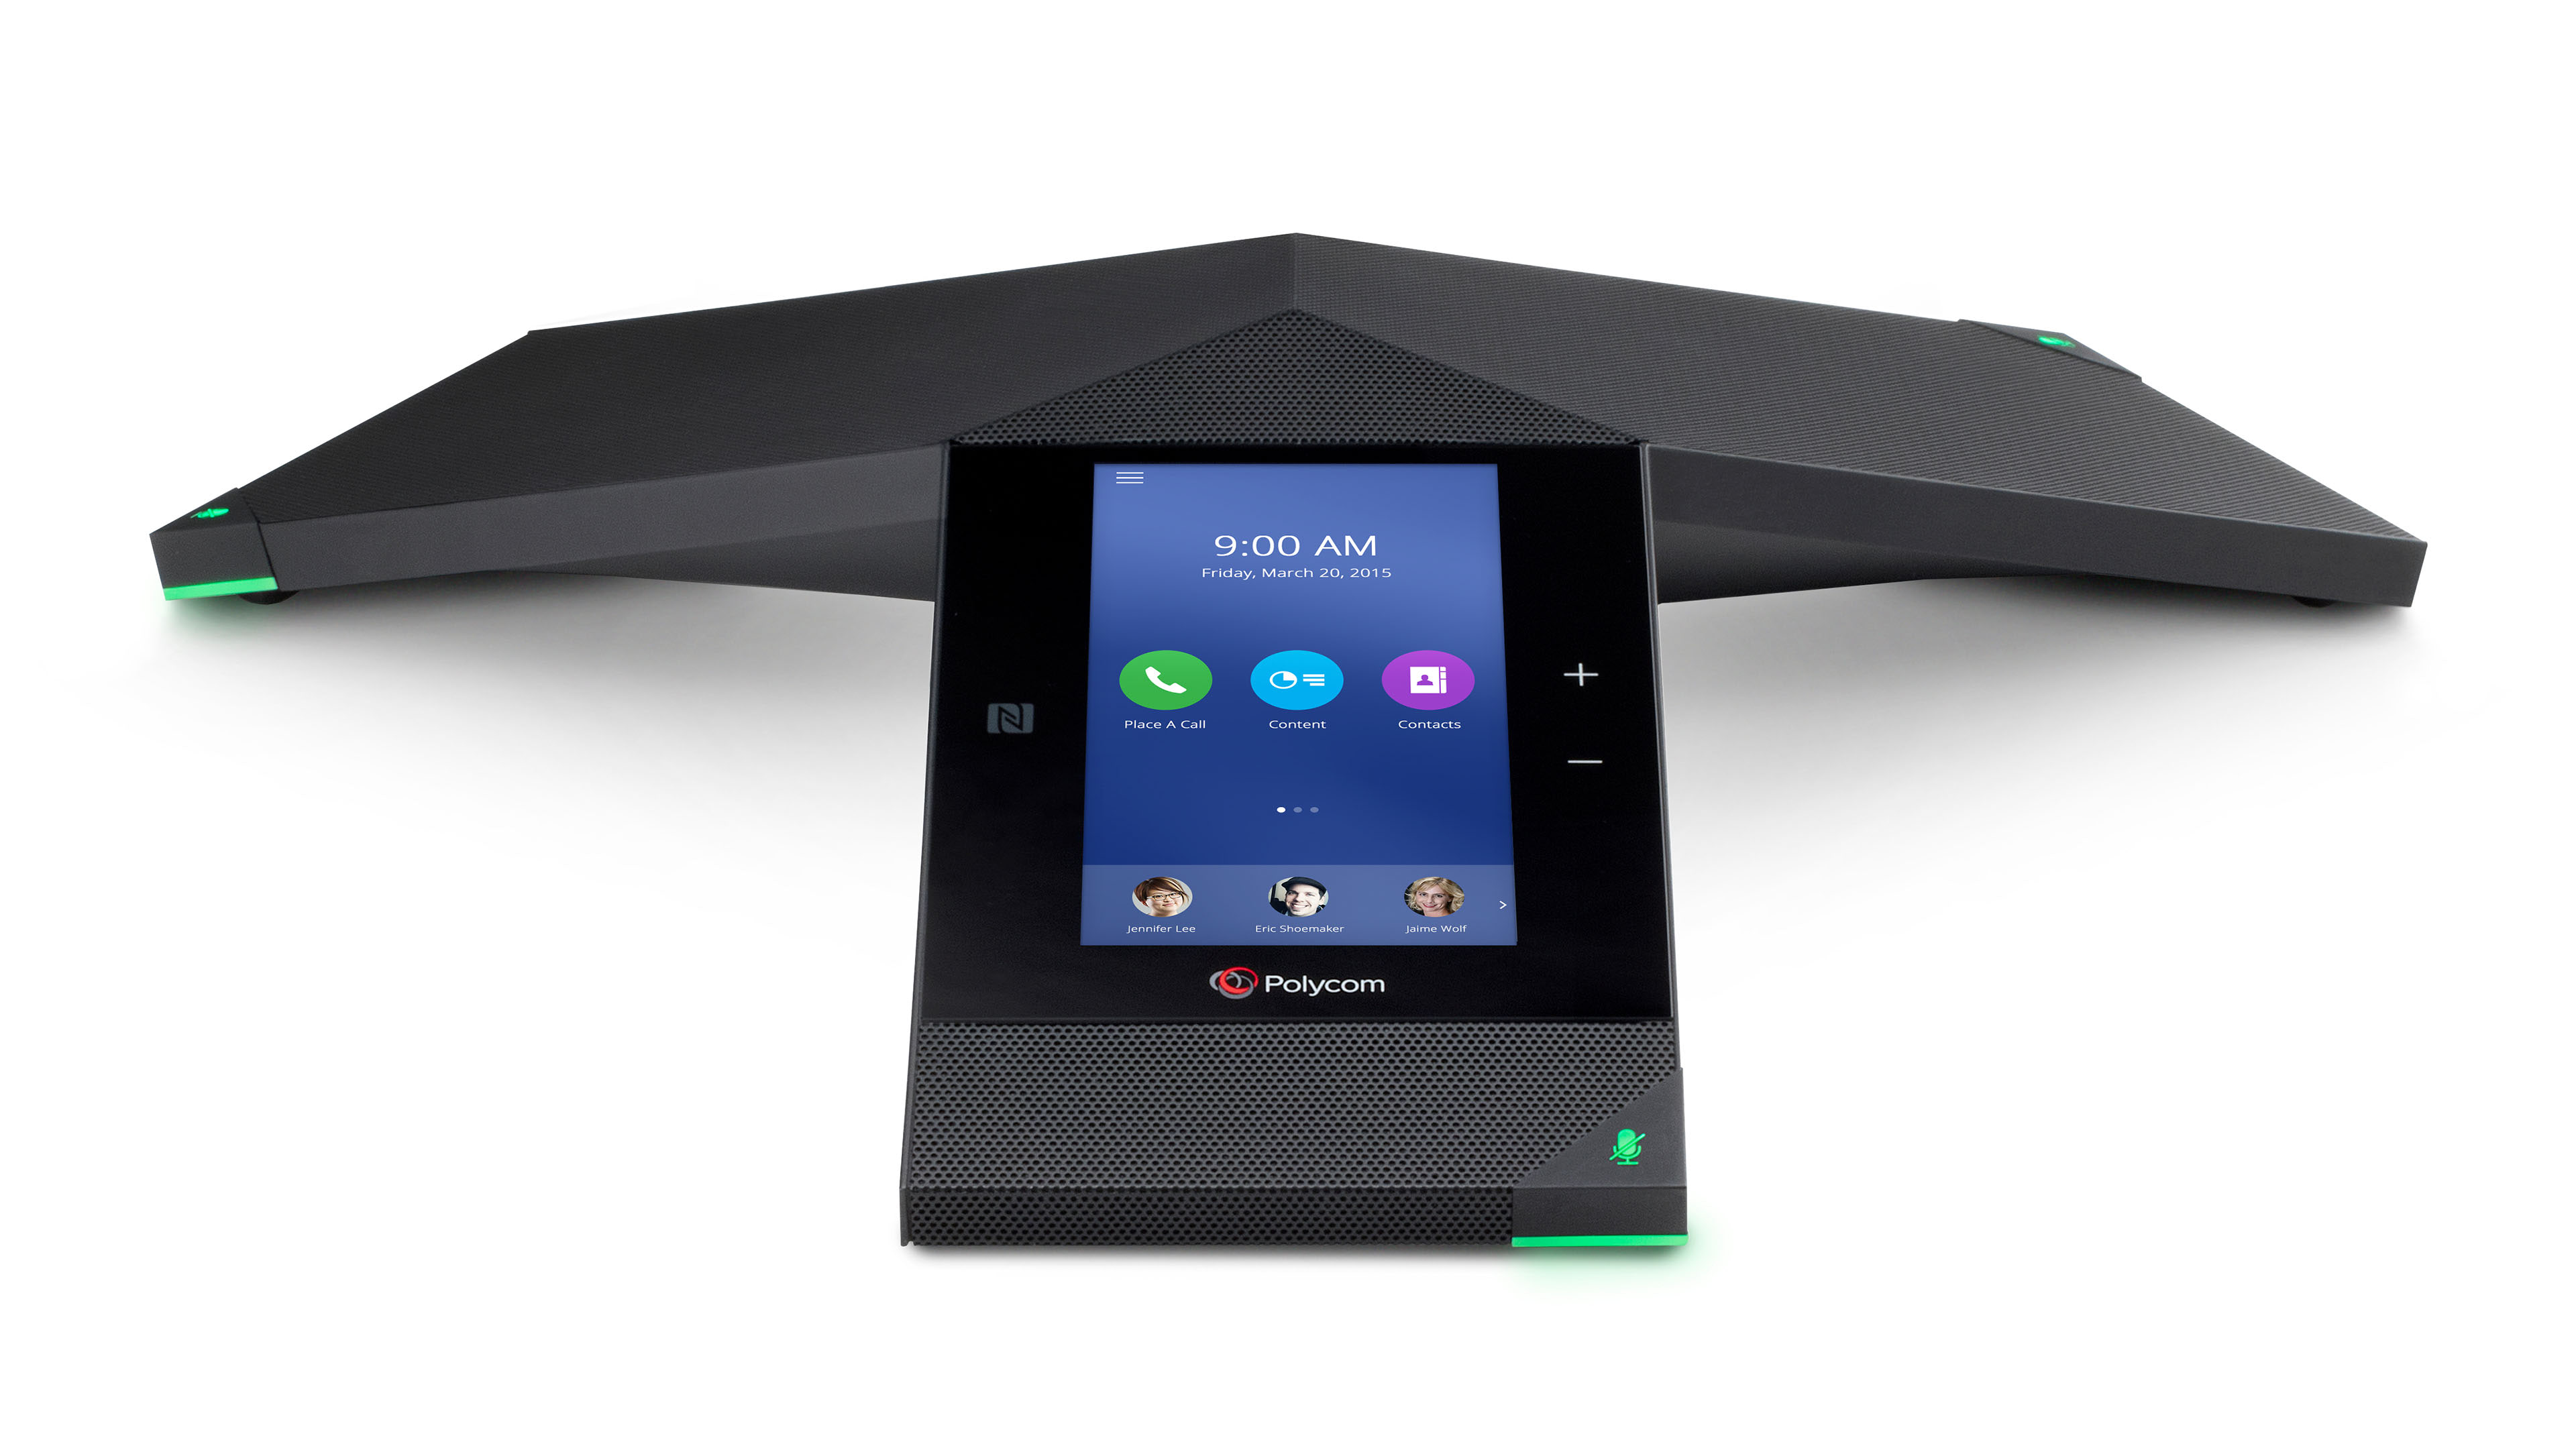 Polycom-Front-Facing-1-No-AV-Pad-PG1